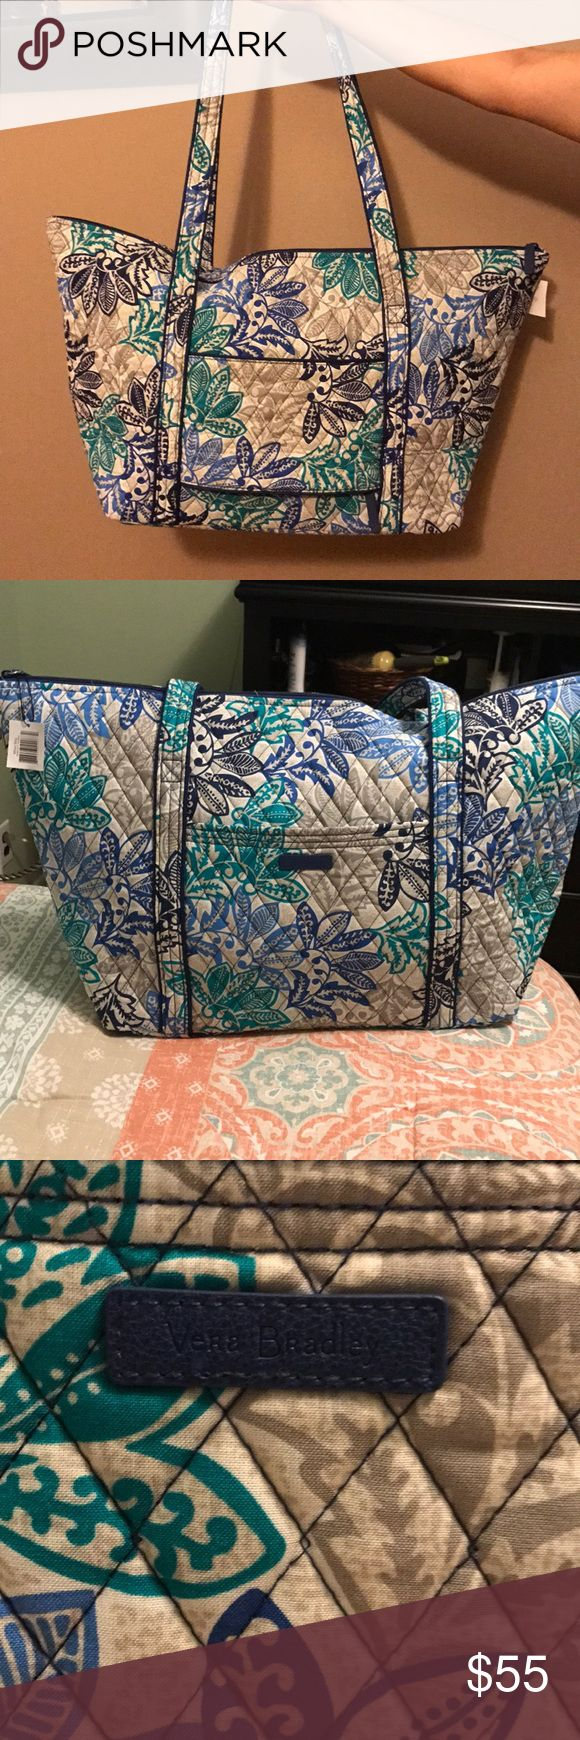 Large Vera Bradley tote bag NWT Large Vera Bradley tote bag with zipper, brand new, never used with tags!! Perfect for travel Vera Bradley Bags Totes